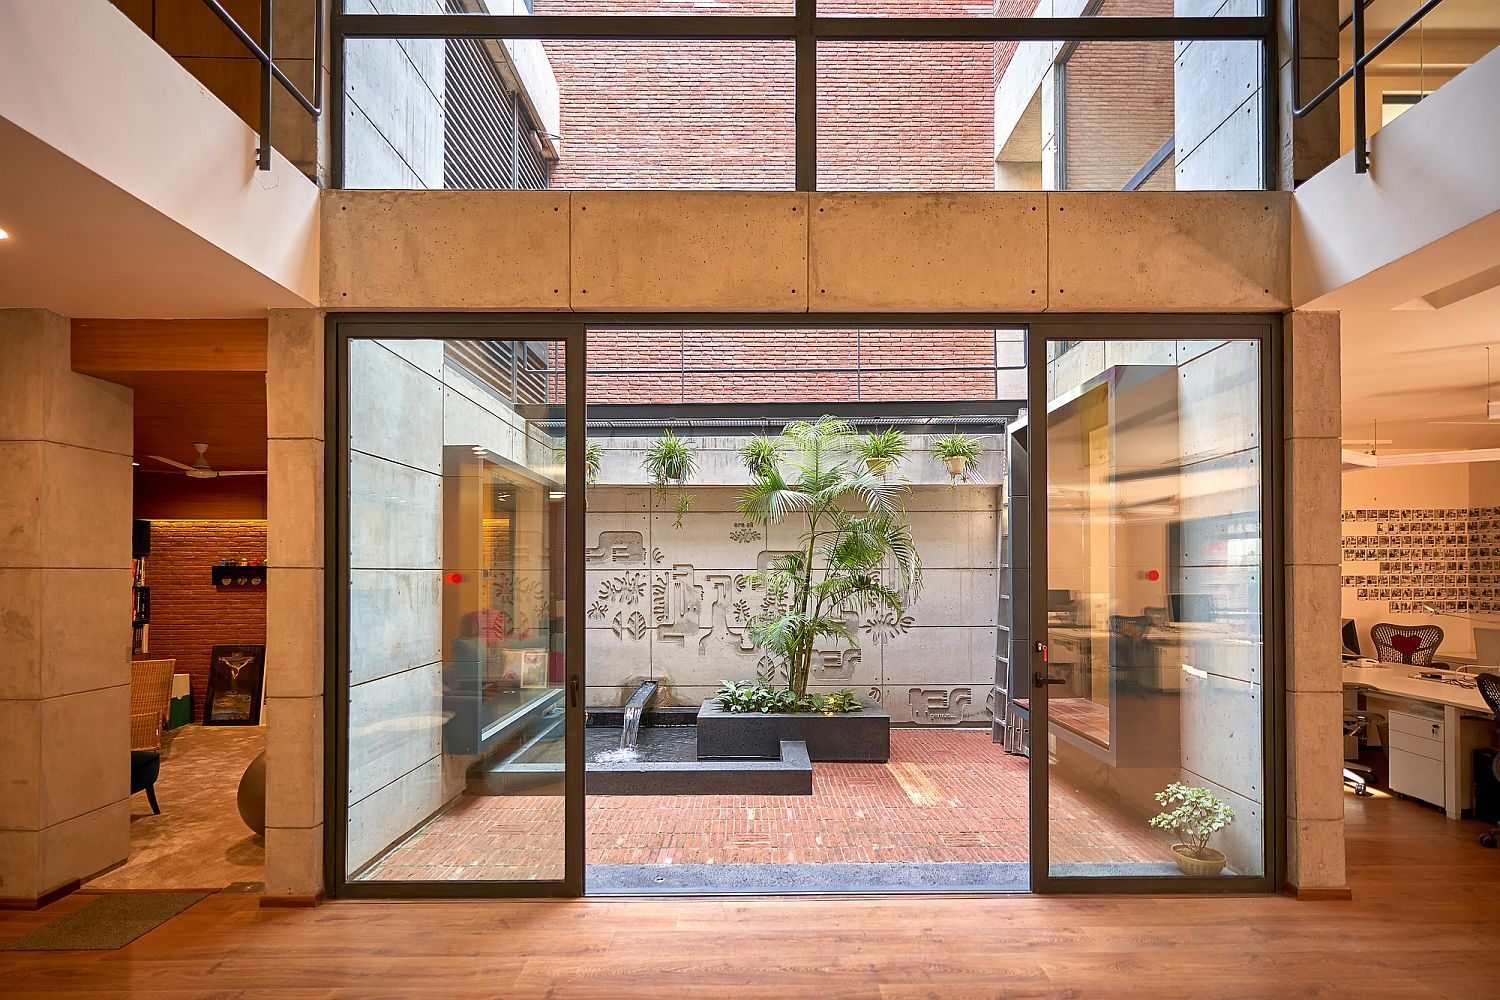 Sliding glass doors connect the interior with the beautiful modern courtyard